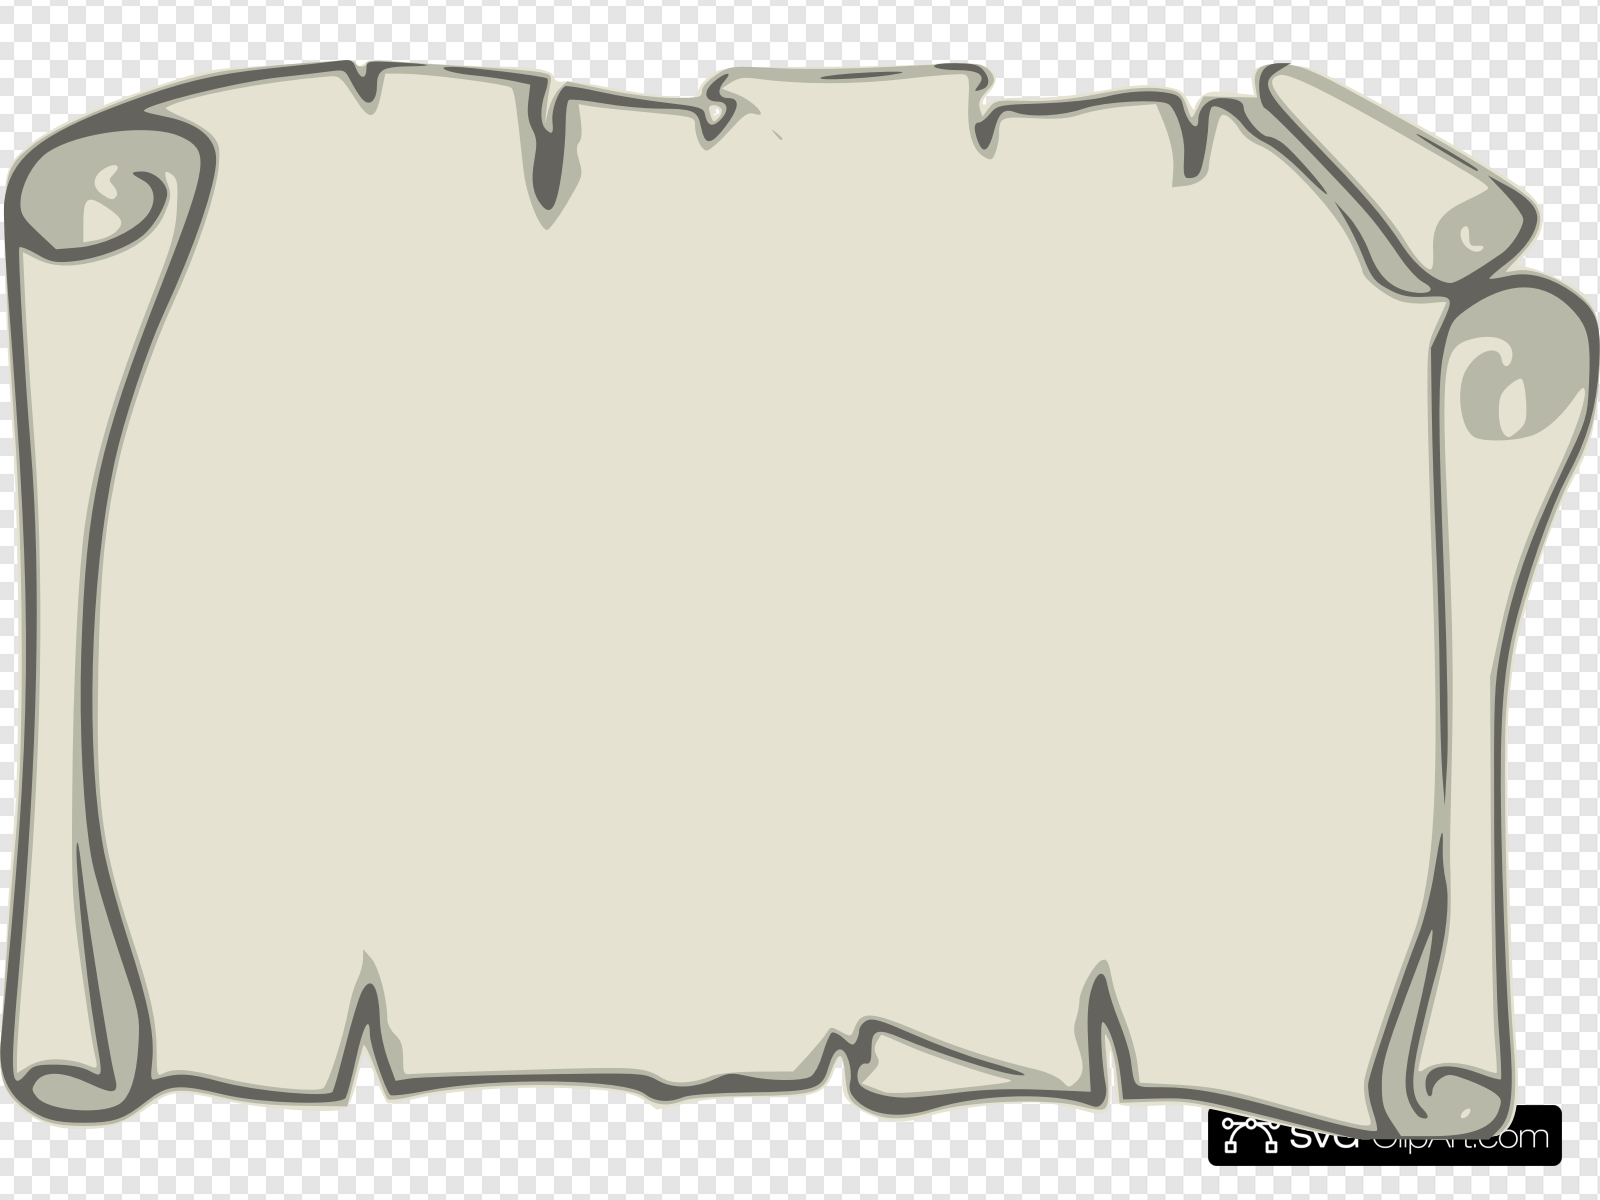 Paper scroll clipart picture free Leather Paper Scroll Clip art, Icon and SVG - SVG Clipart picture free